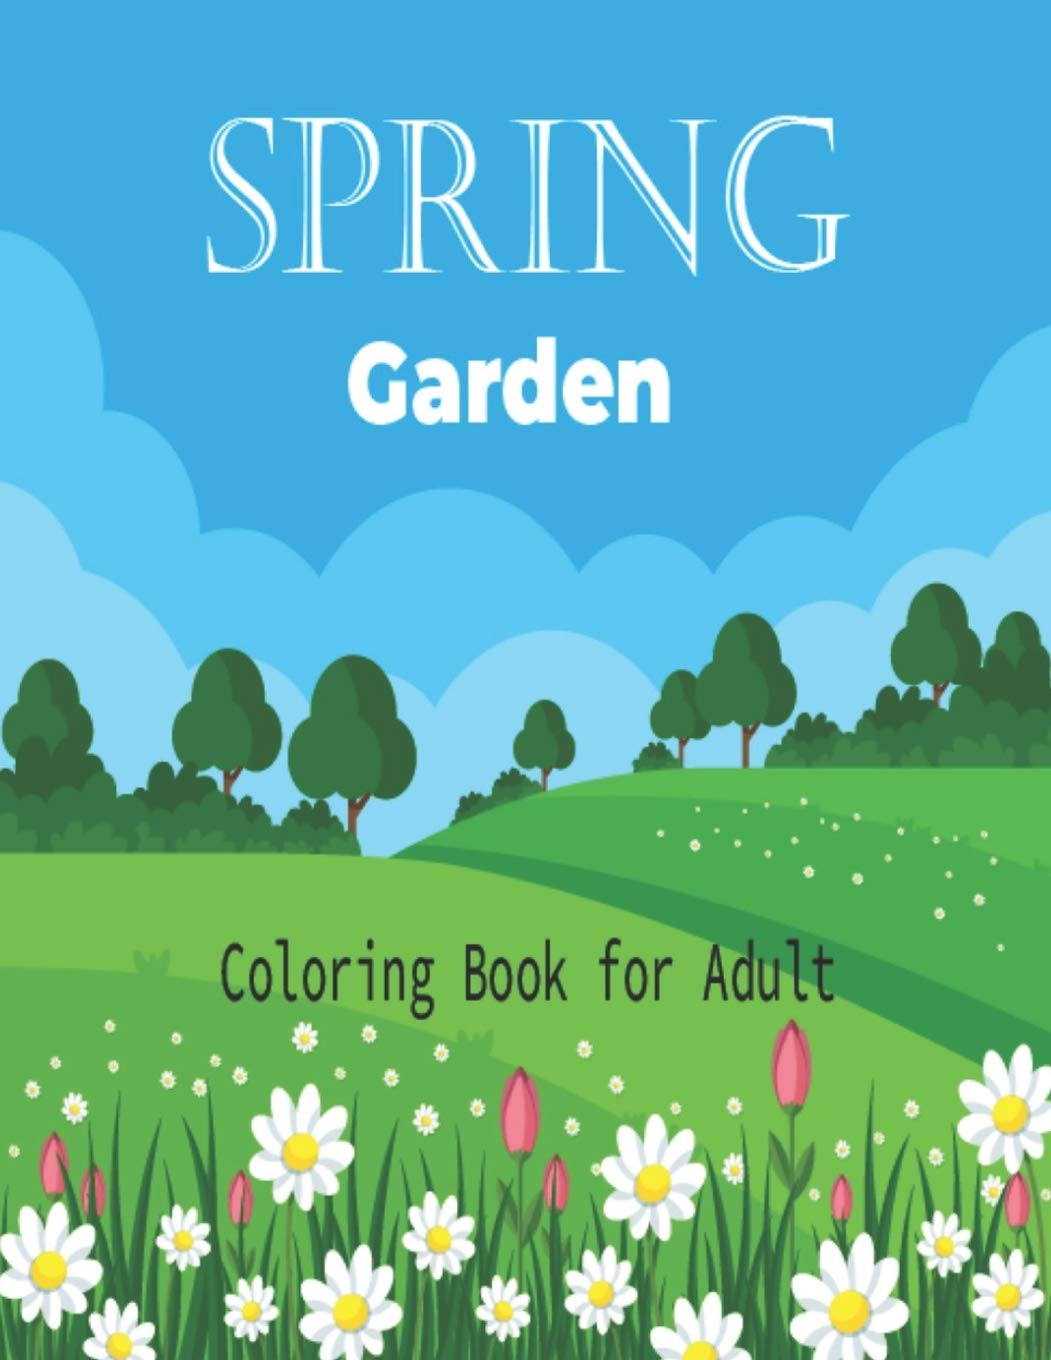 Spring Garden Coloring Book for Adult: Easy Coloring Book for Kids